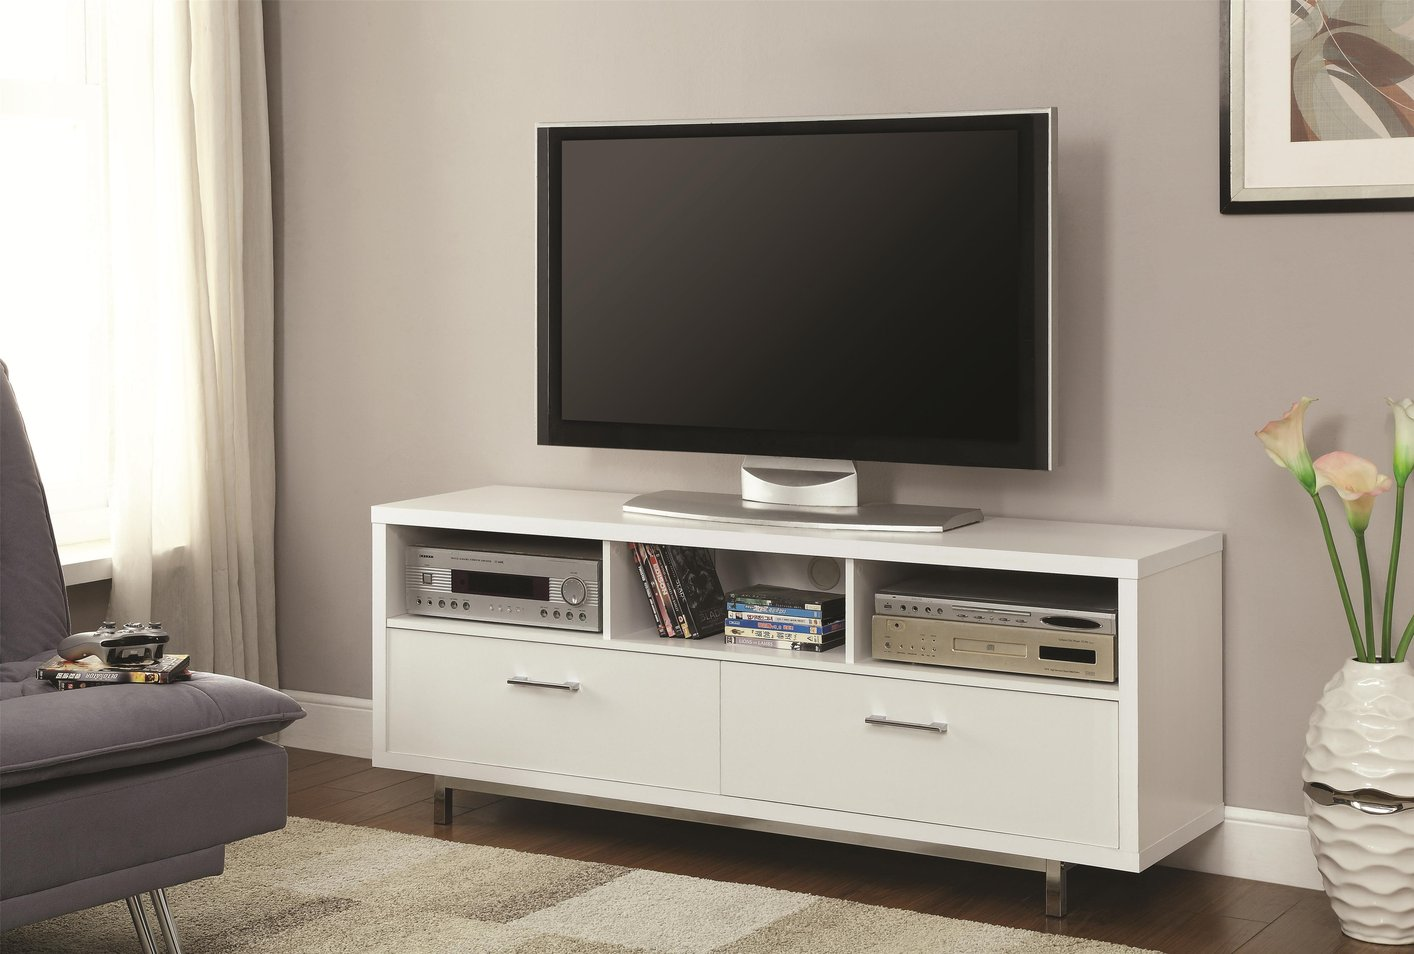 White Wood TV Stand - Steal-A-Sofa Furniture Outlet Los Angeles CA